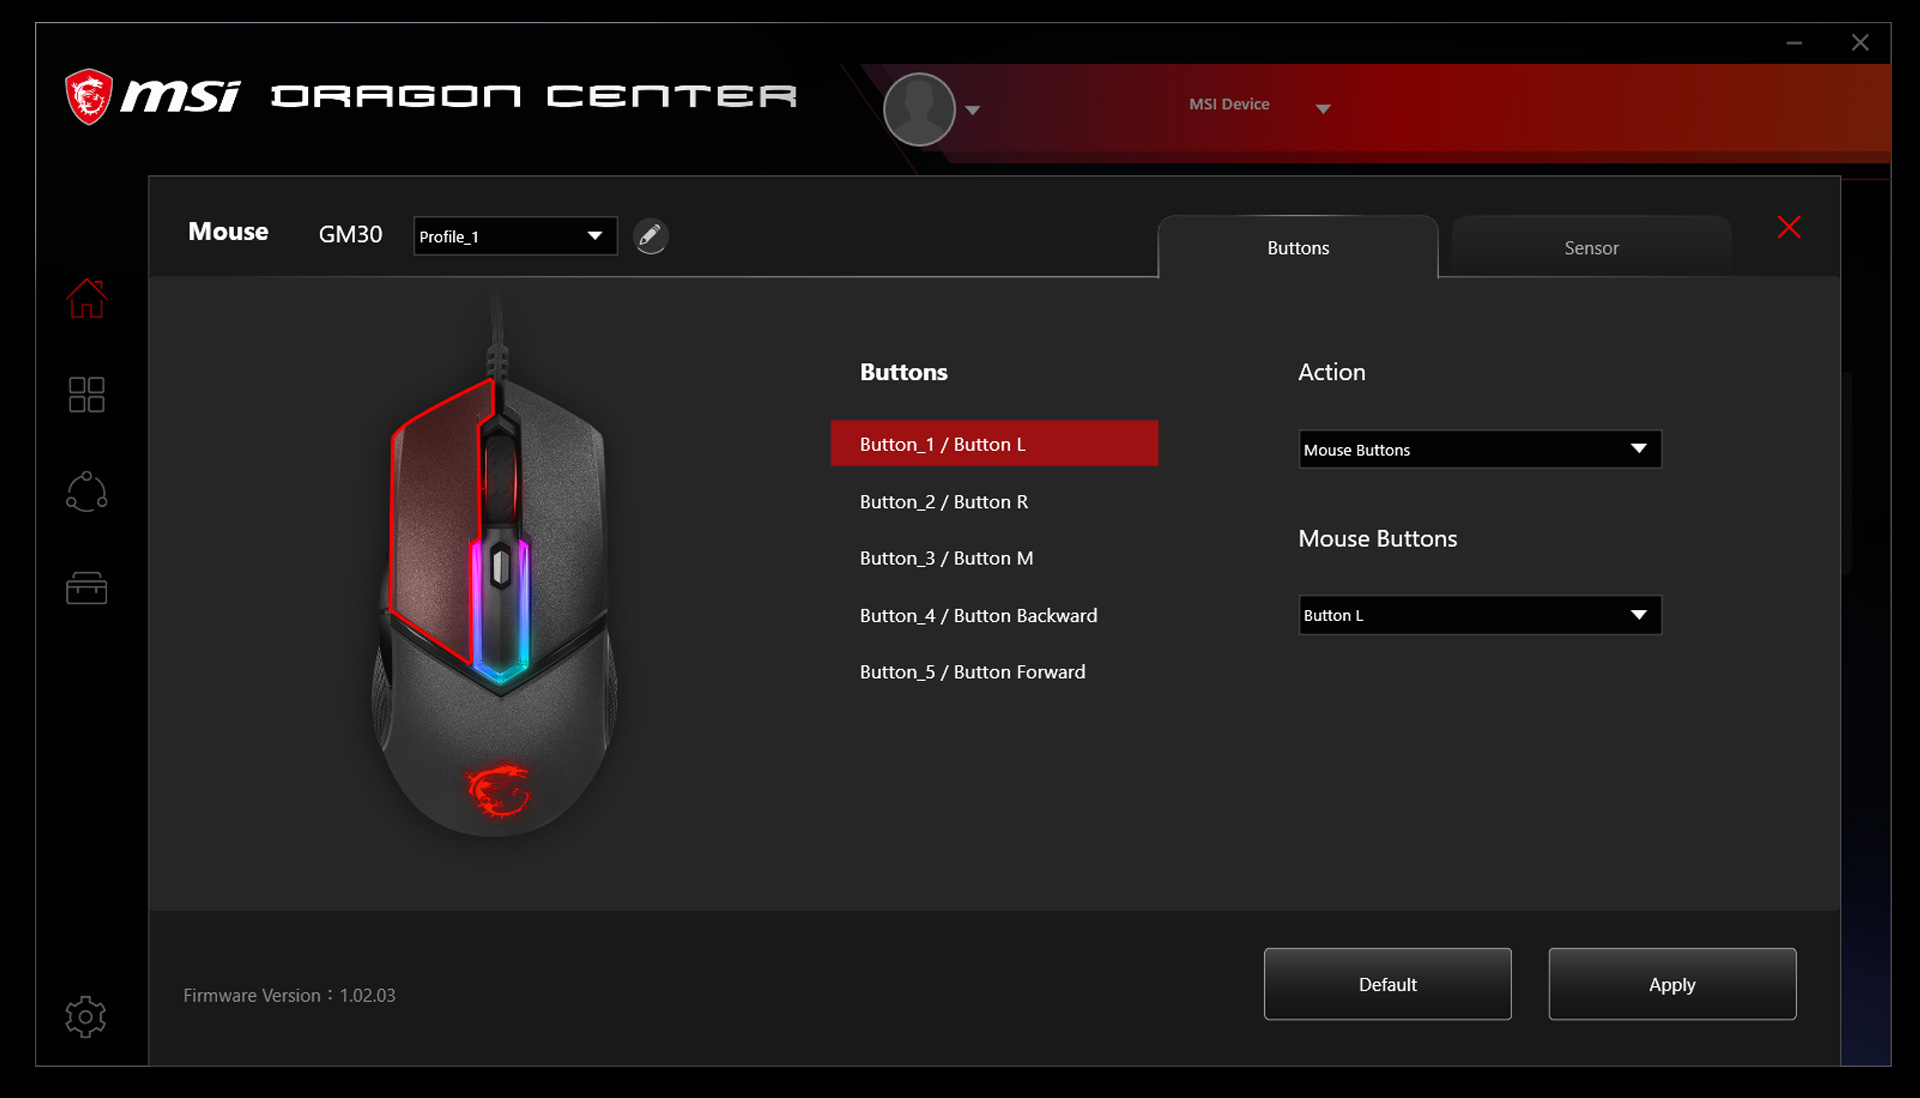 dragon center gaming armory mode 2.0